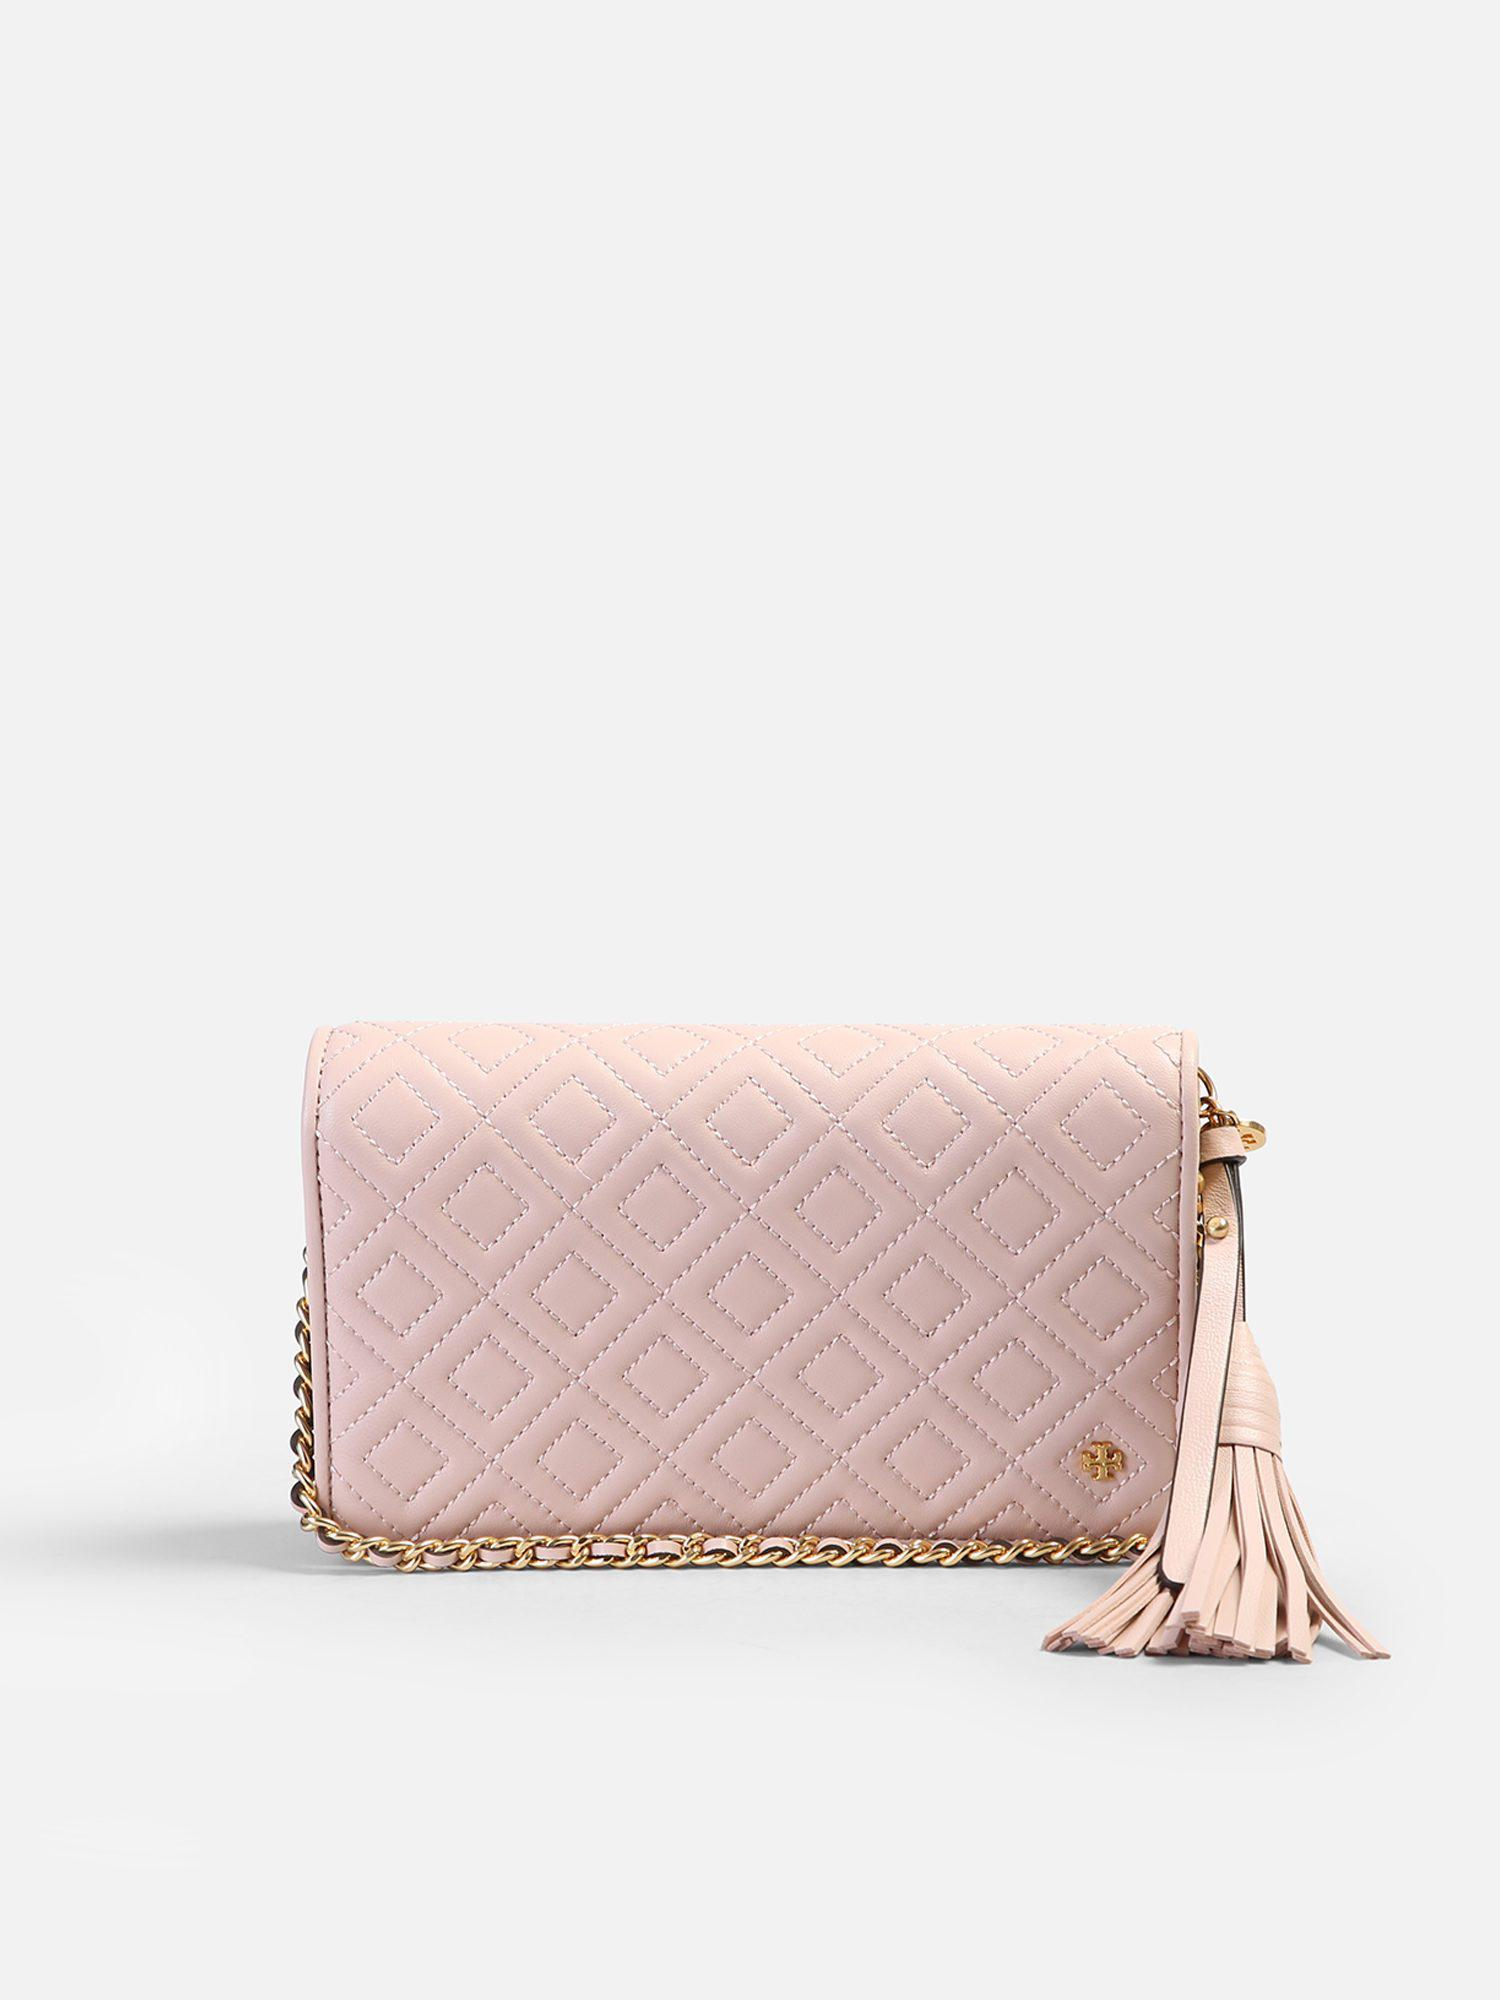 d4c9d4ff3b3 Tory Burch Fleming Leather Shoulder Bag in Pink - Lyst